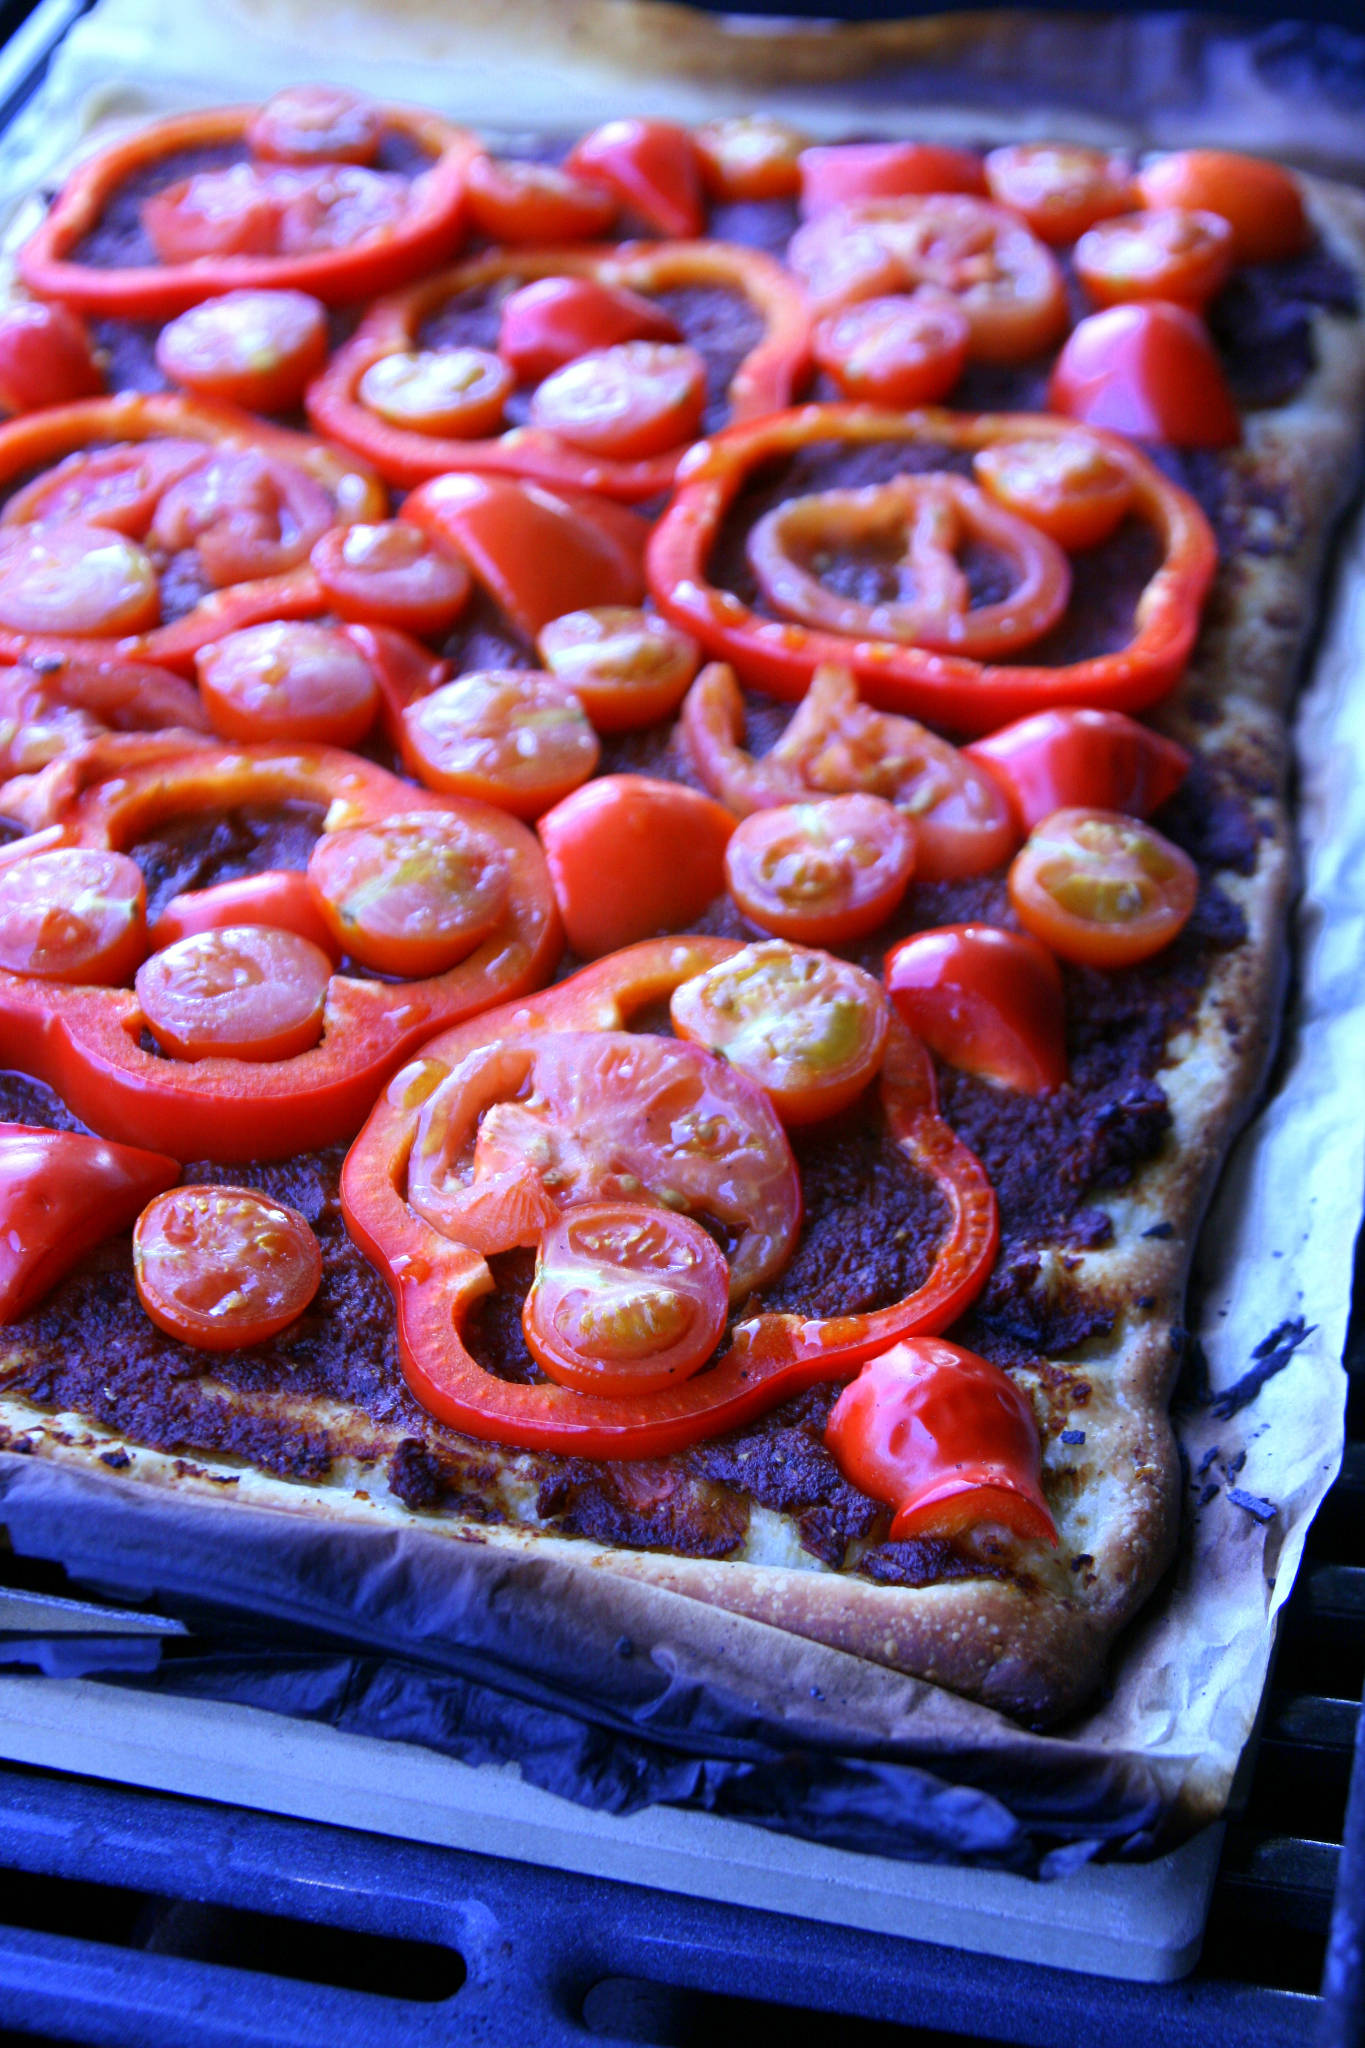 Pizza rouge au barbecue